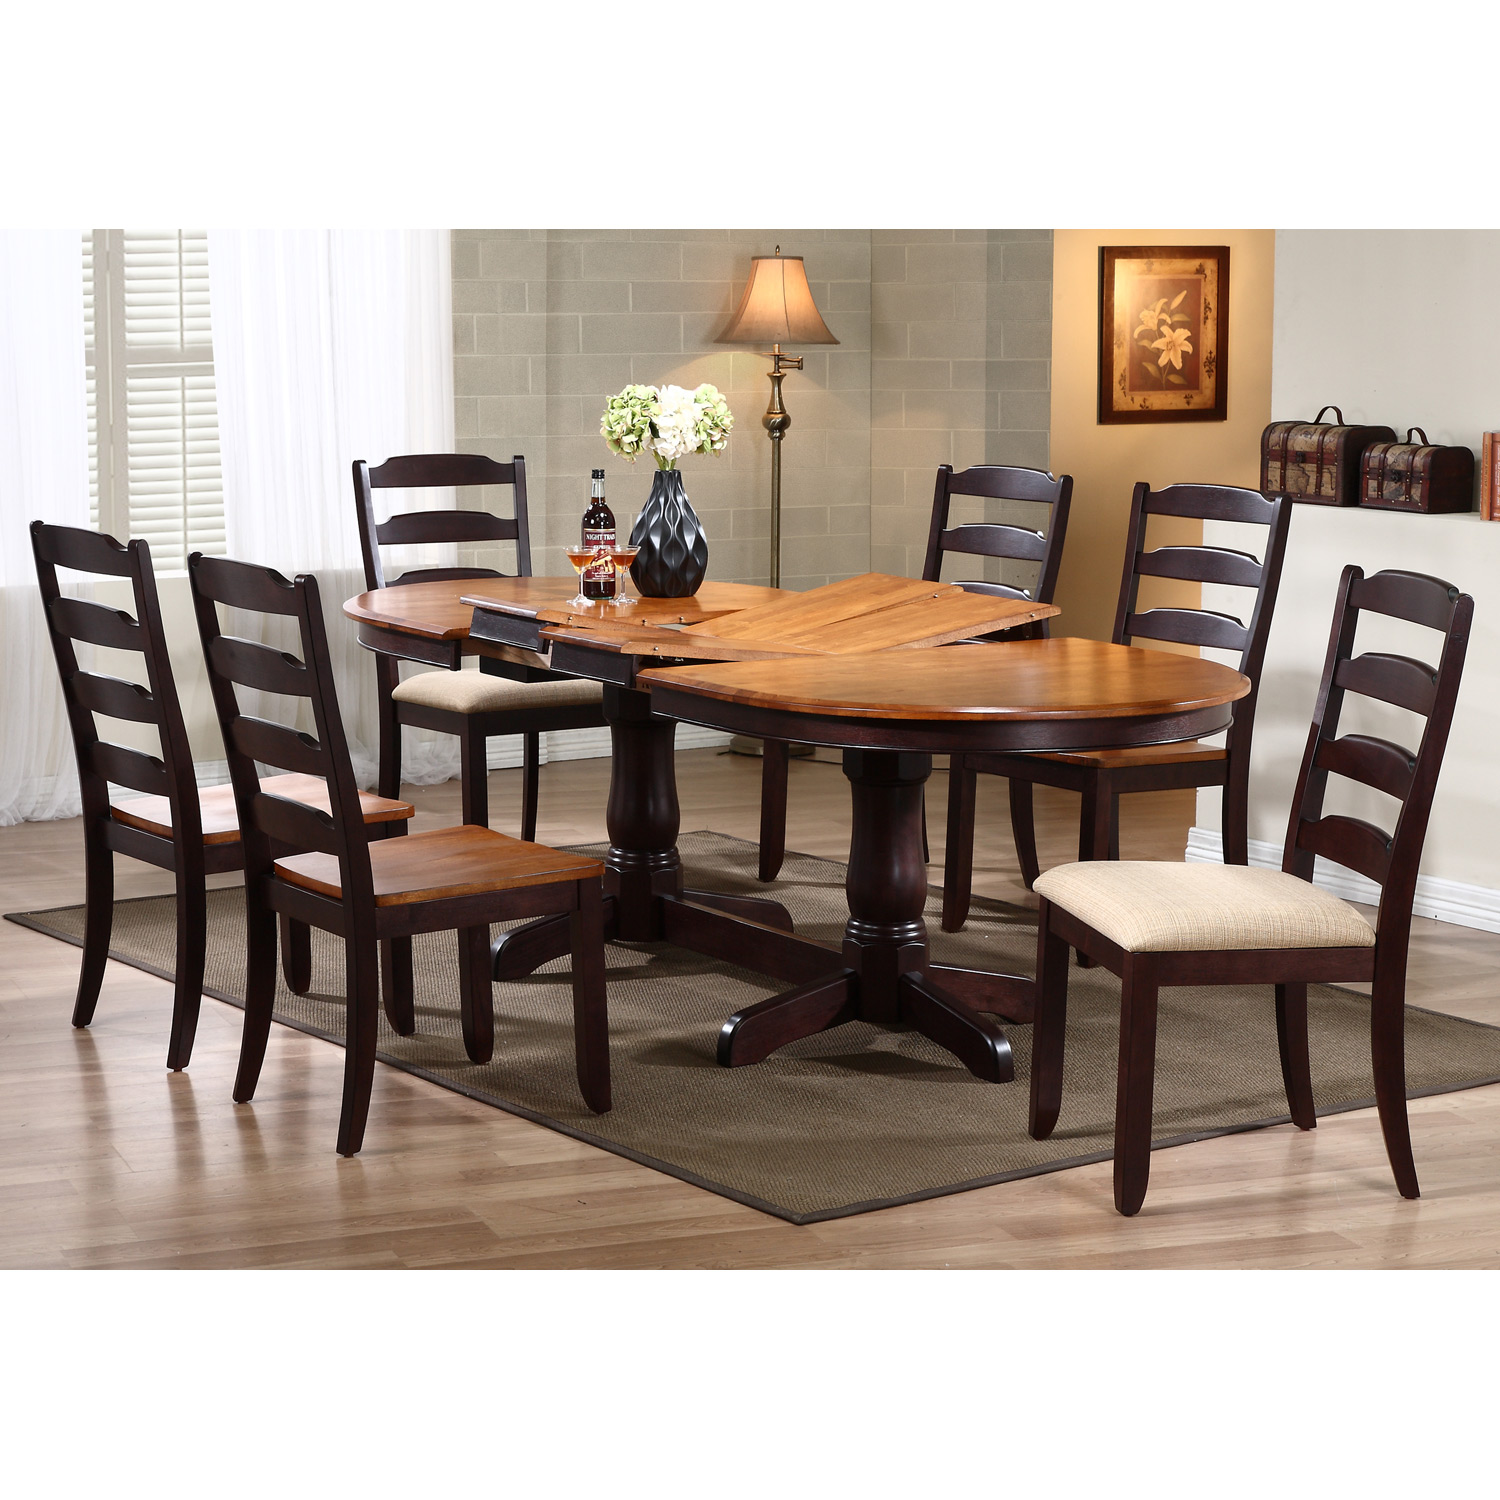 Gatsby 7 Piece Oval Extending Dining Set   Ladder Back Chairs, Mocha | DCG  Stores